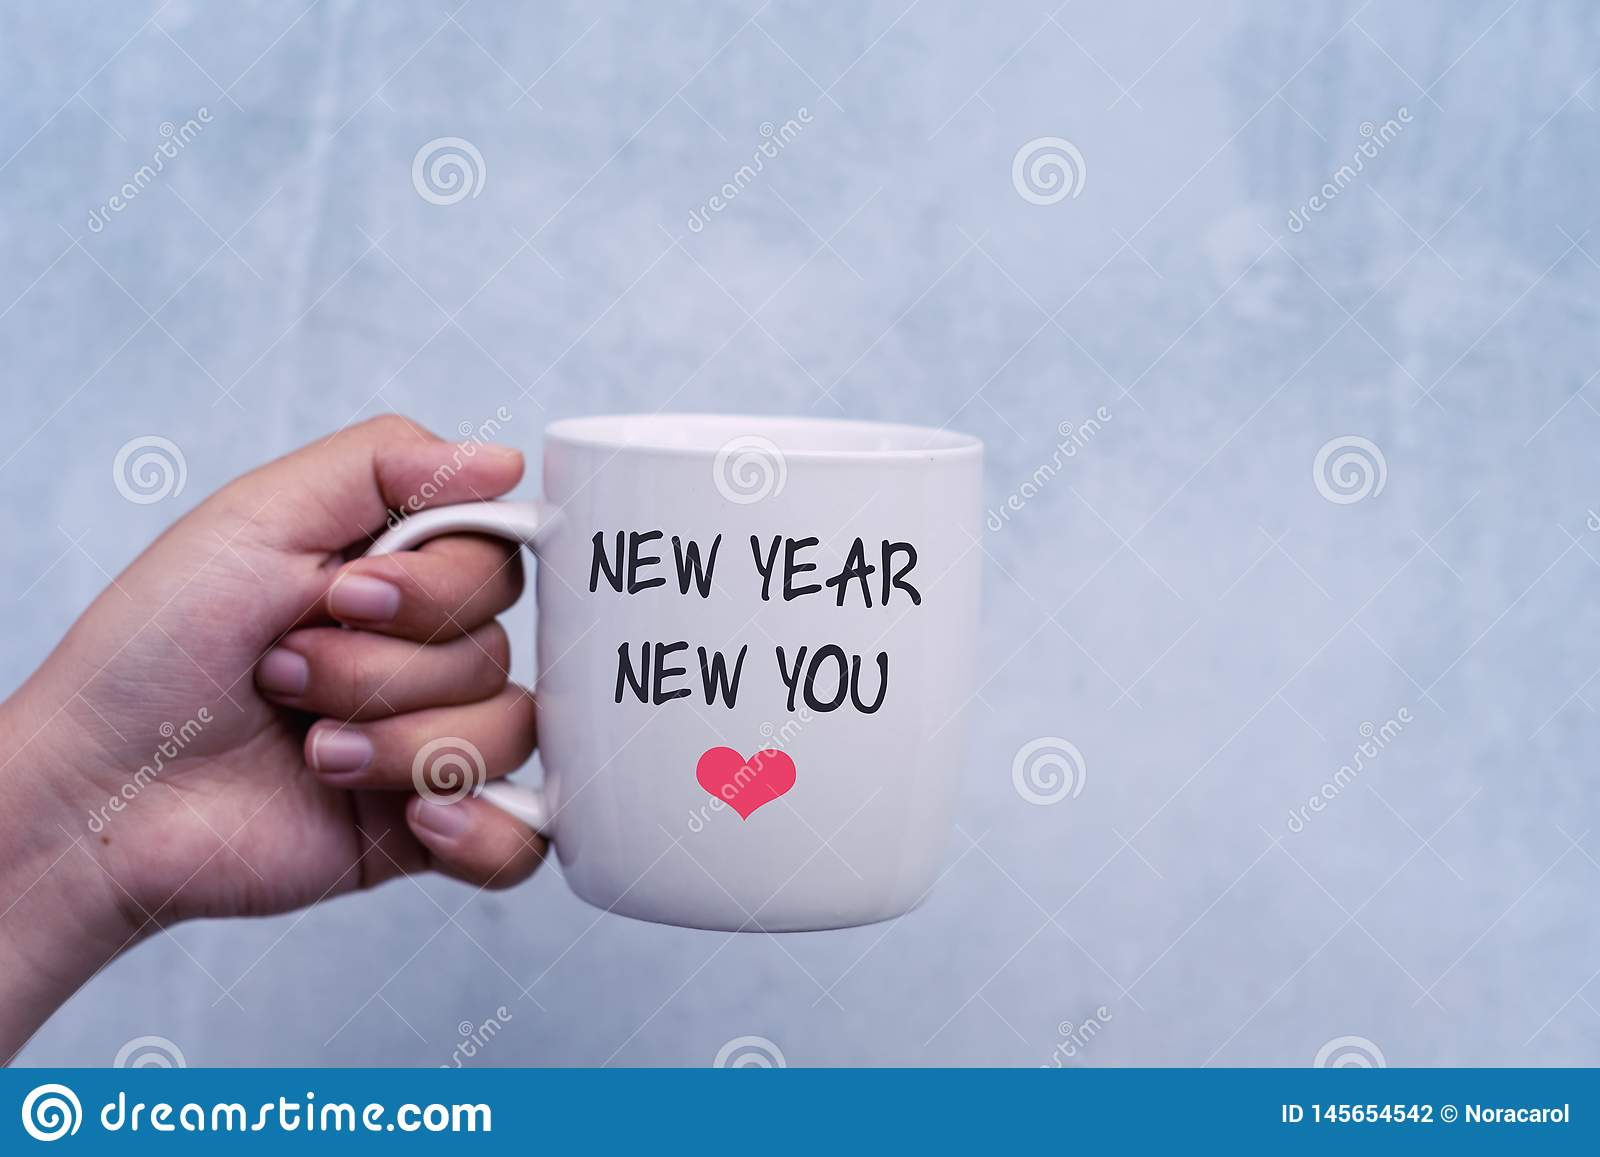 inspirational quotes new year new you stock photo image of hand